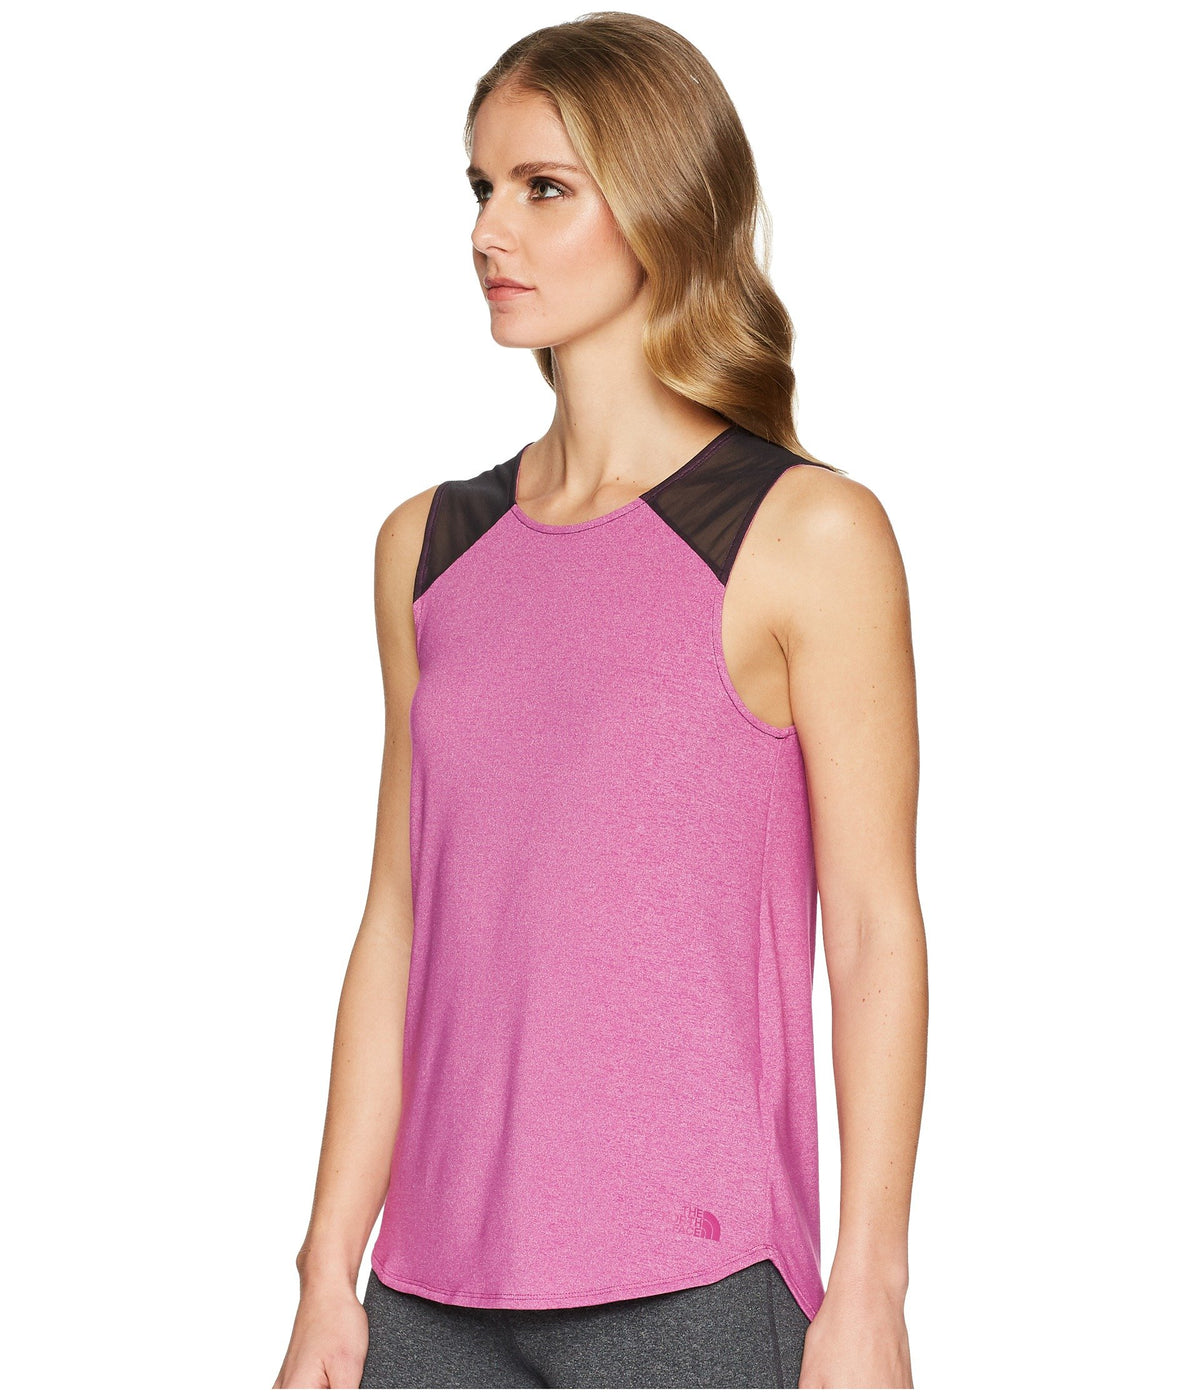 Beyond the Wall Backless Tank Top